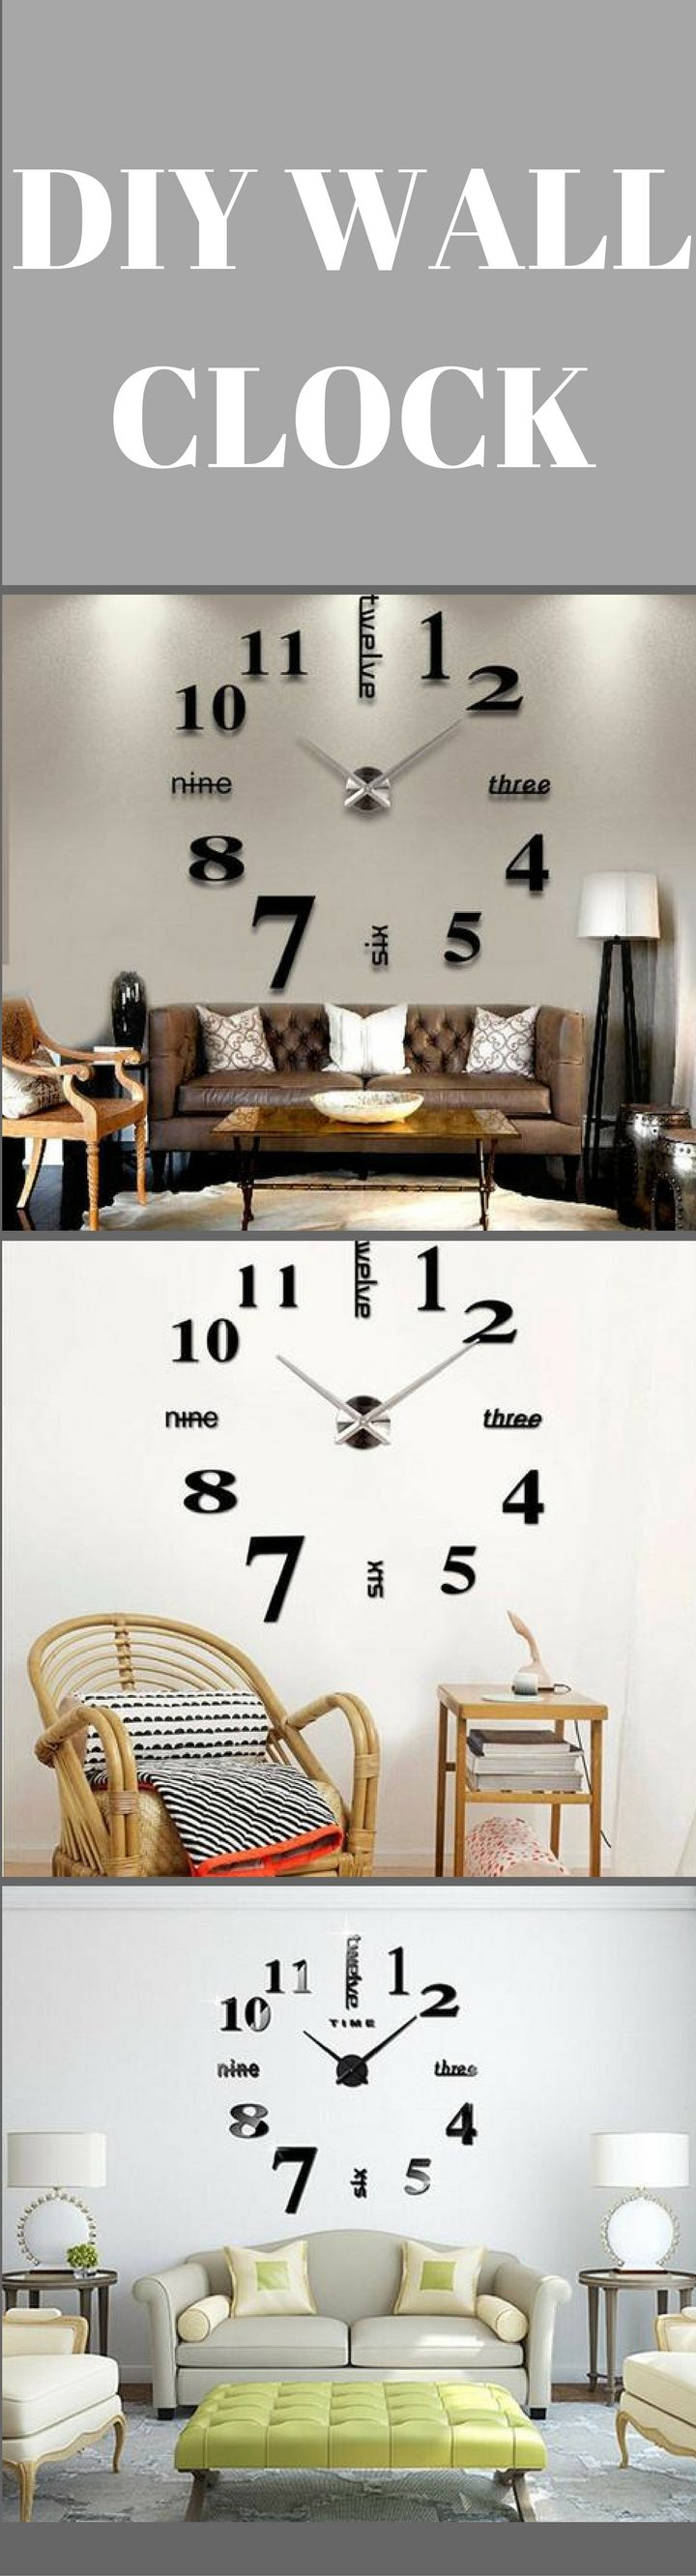 25 unique clock movements ideas on pinterest clocks the clocks buy 3d diy large wall clock black at marketplacefinds for only 2699 amipublicfo Gallery